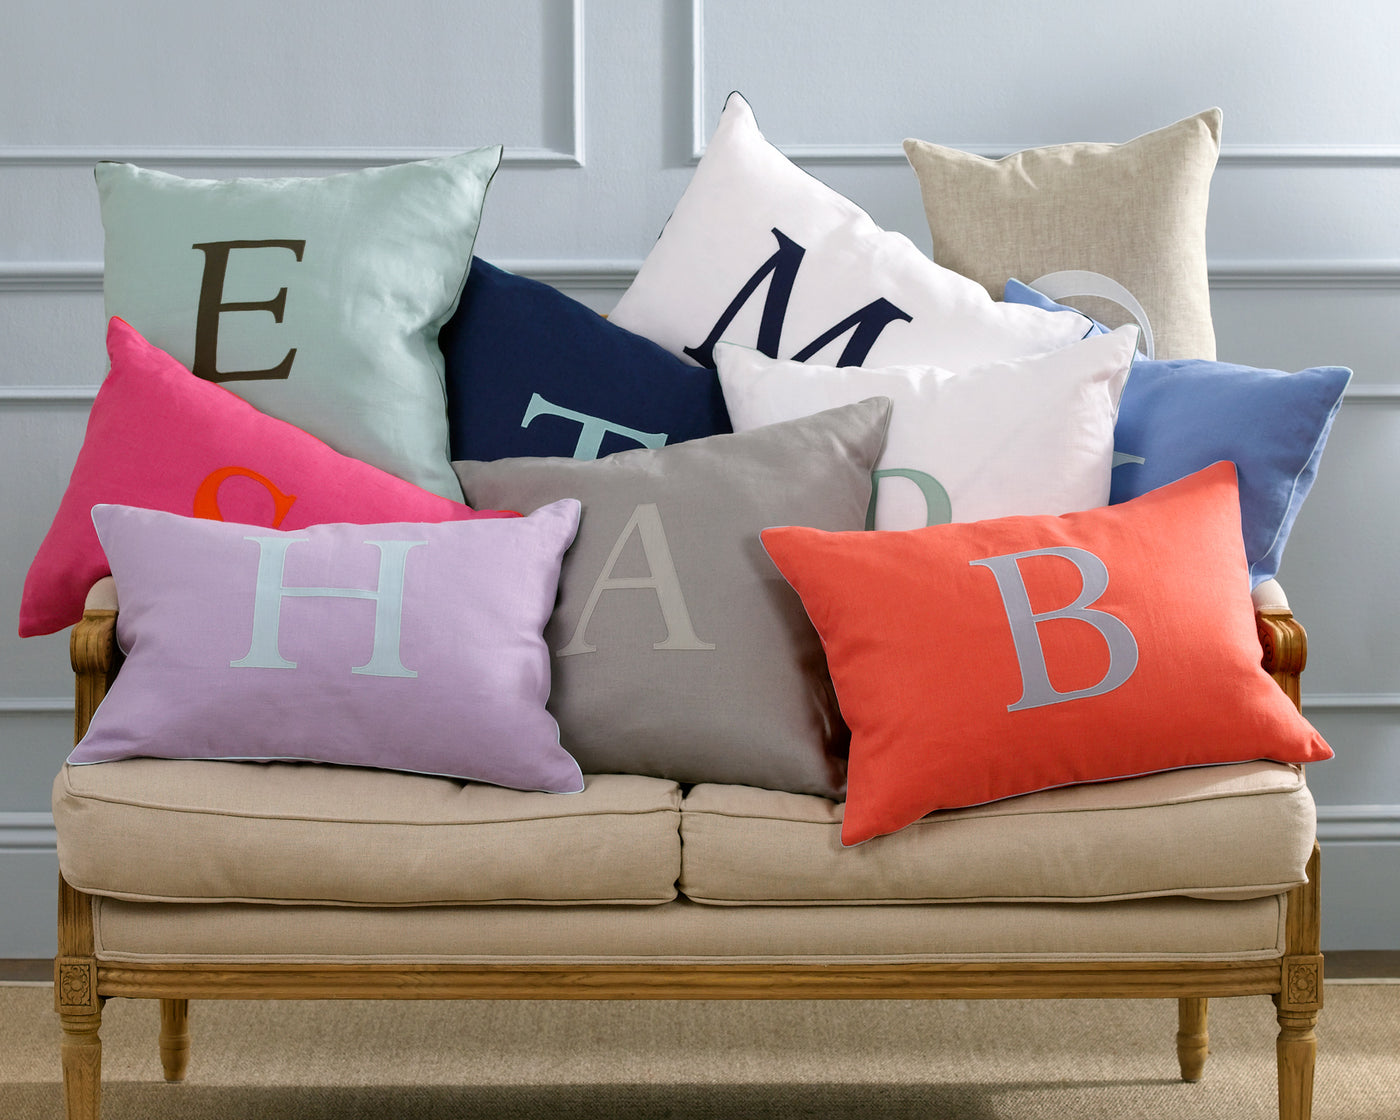 Initial | Decorative Pillow